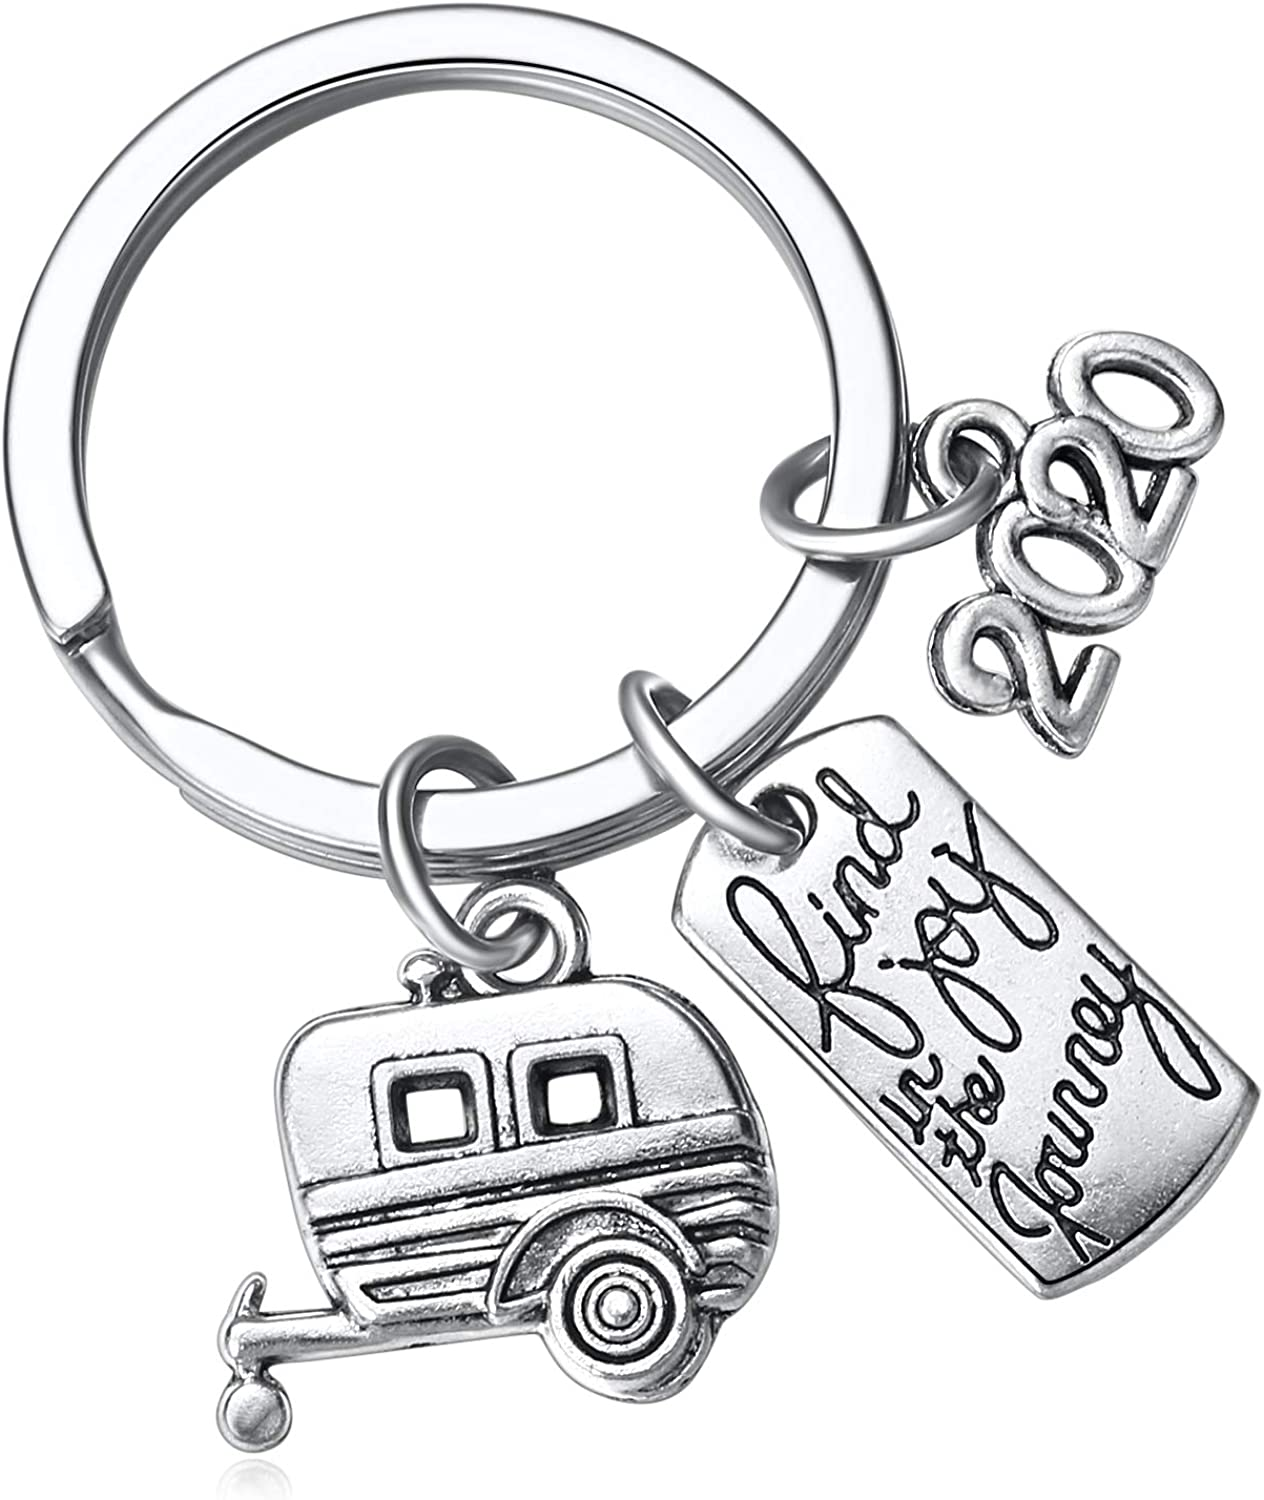 2020 Find Joy in The Journey Keychain Happy Camper RV Trailer Key Chain Enjoy Retirement Keyring for Boss and Coworker Gift at  Men's Clothing store